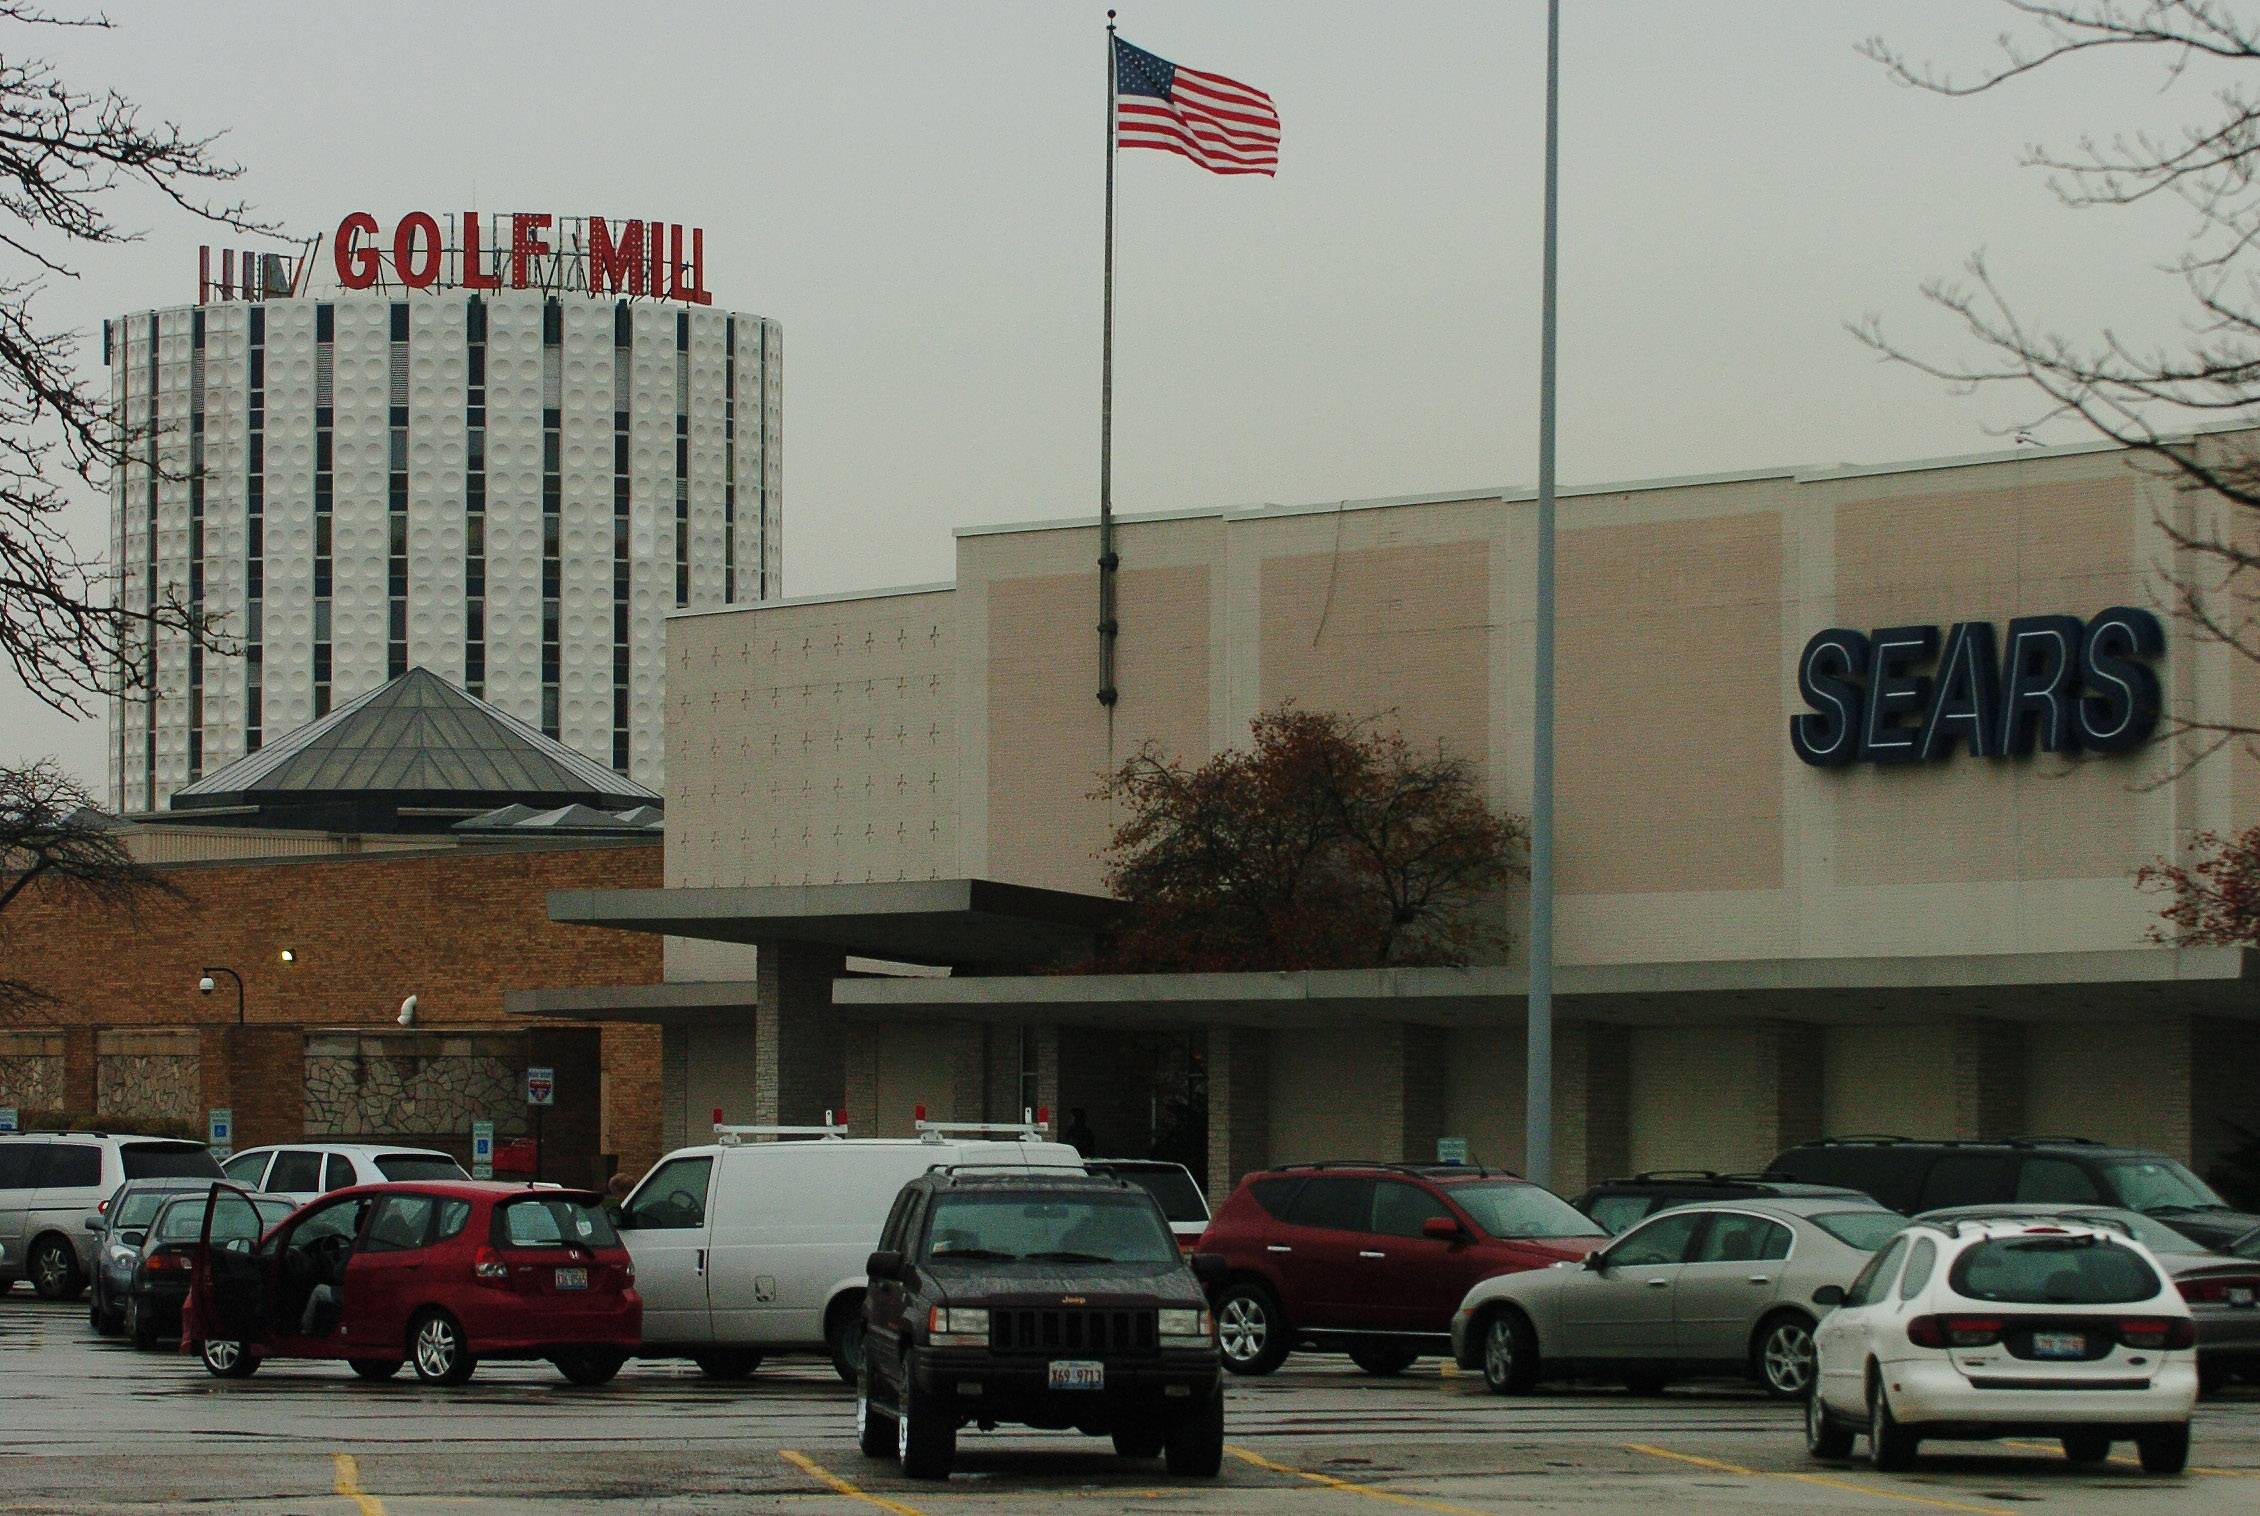 Florida firm acquires Golf Mill property for $60 million